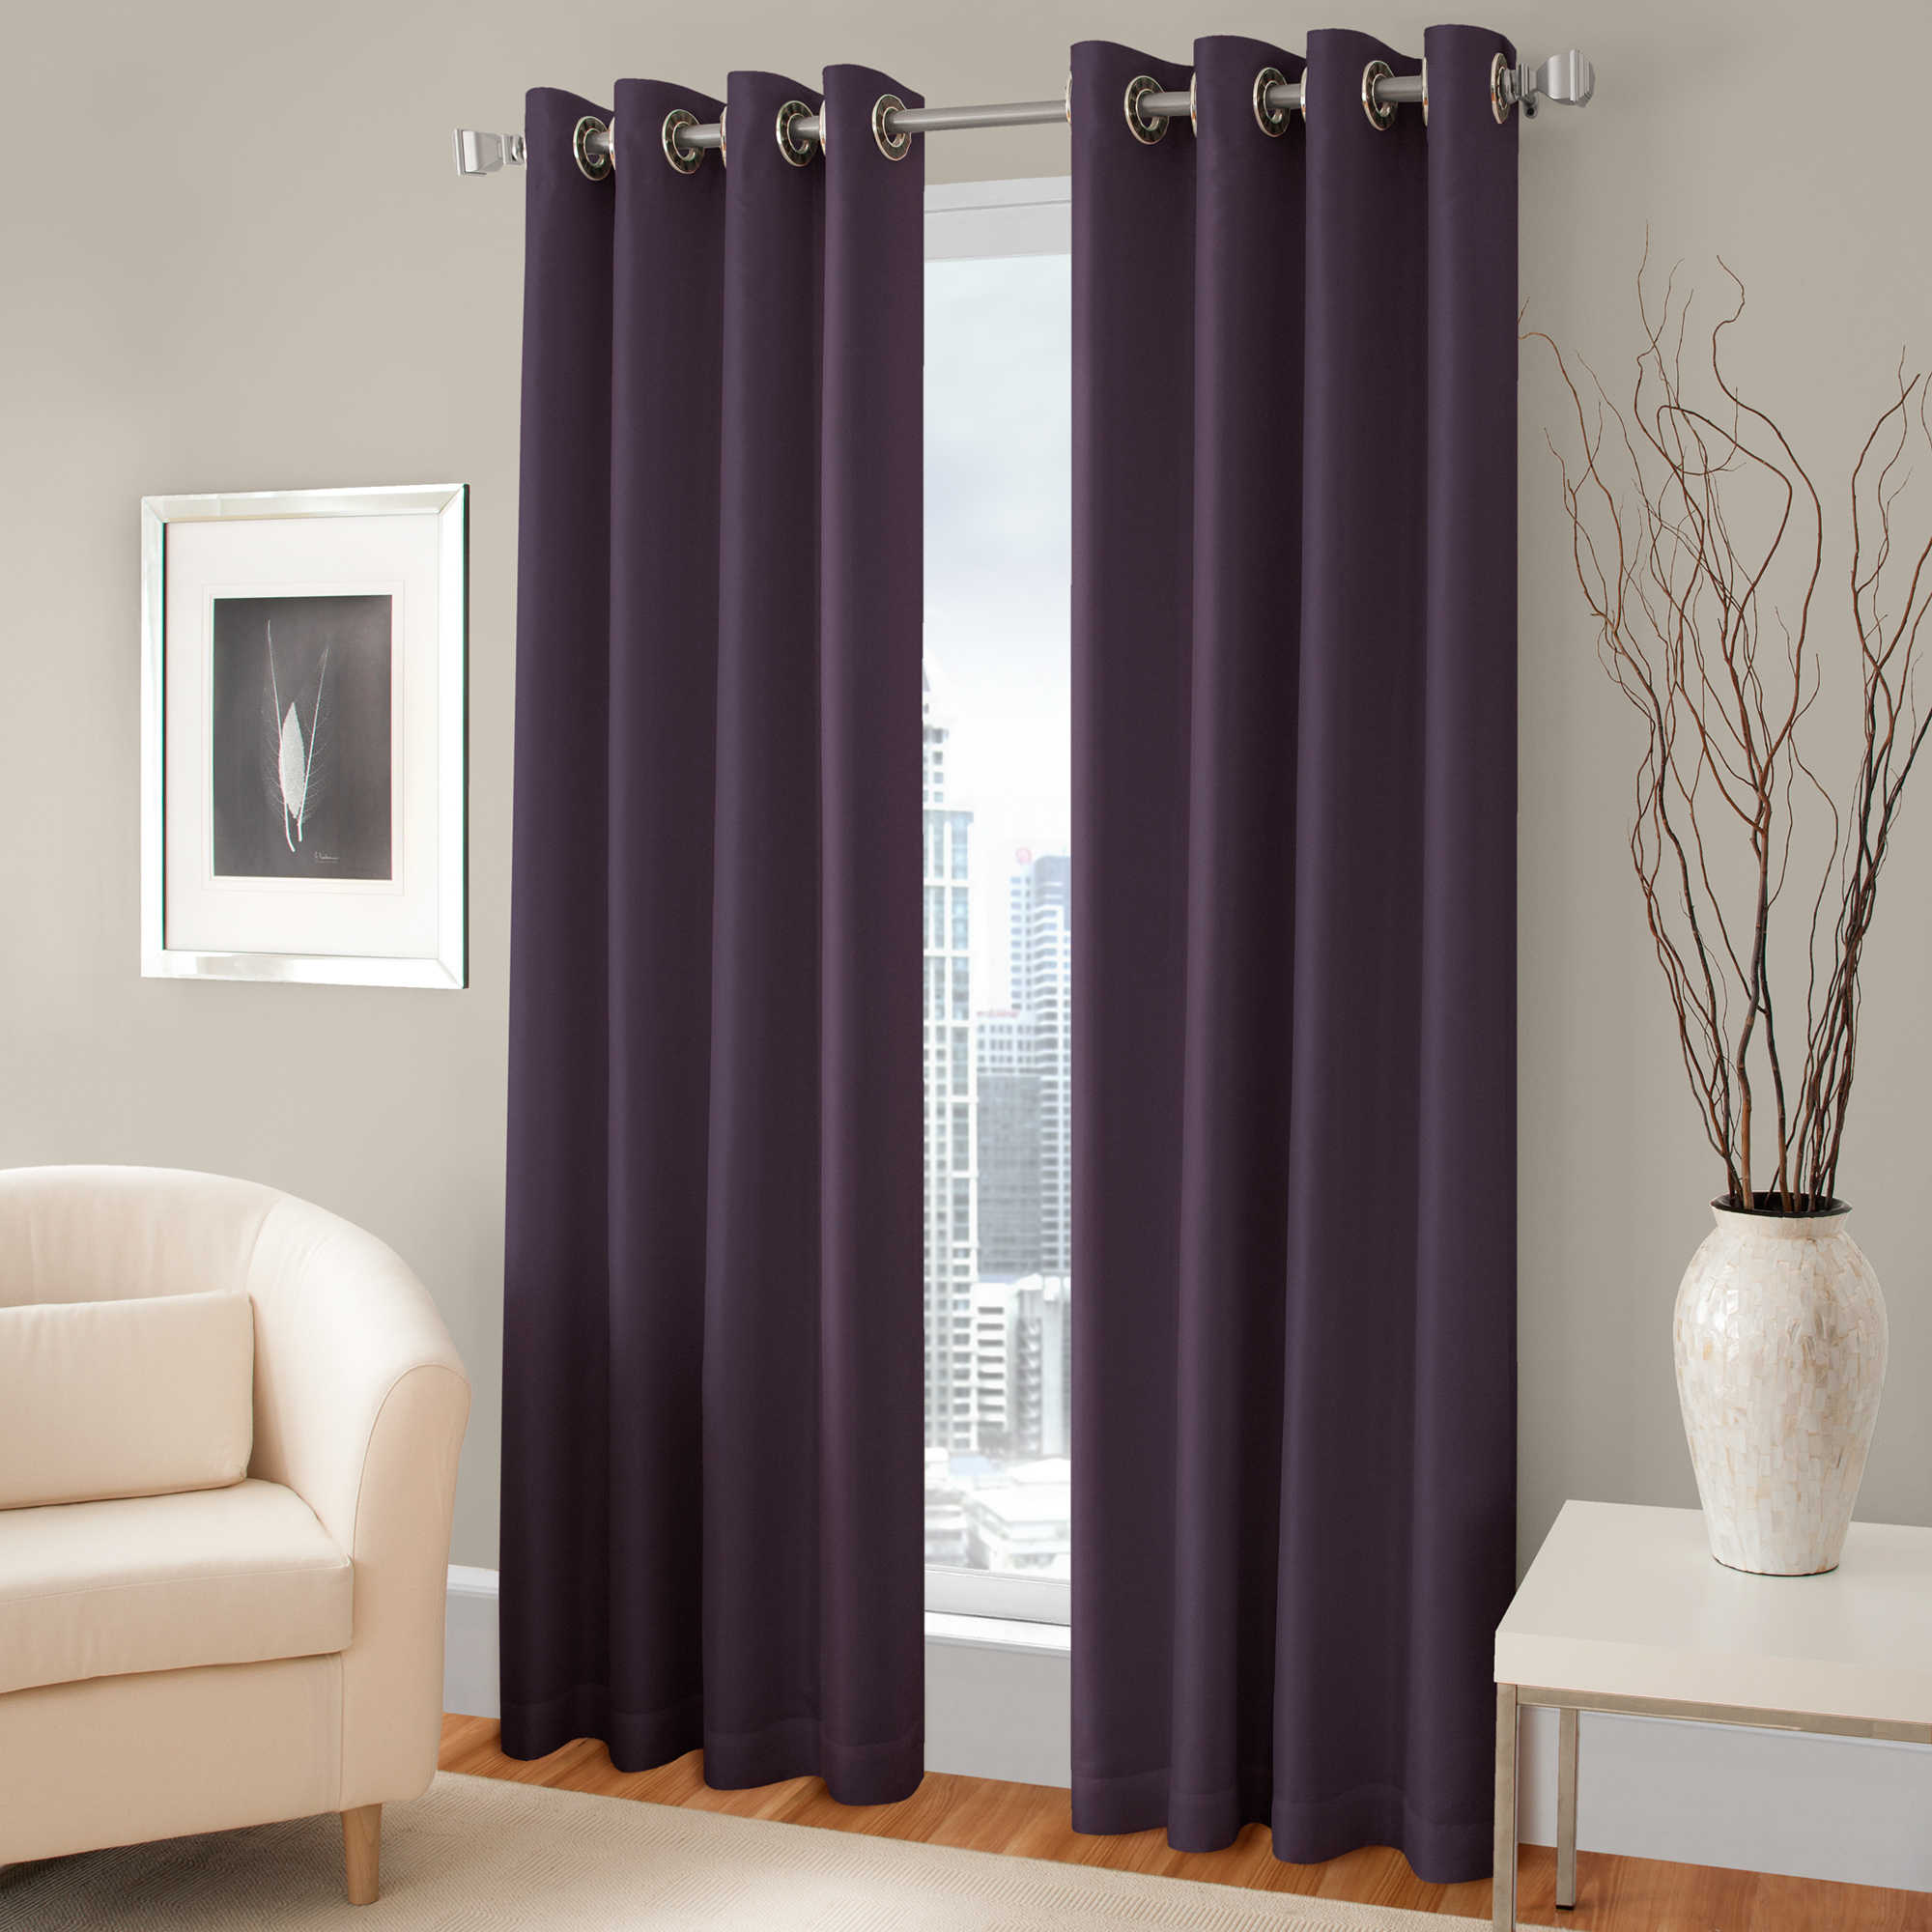 panel energy amazon sun curtain com x efficient curtains rod pocket barrow kitchen purple home dp zero panels